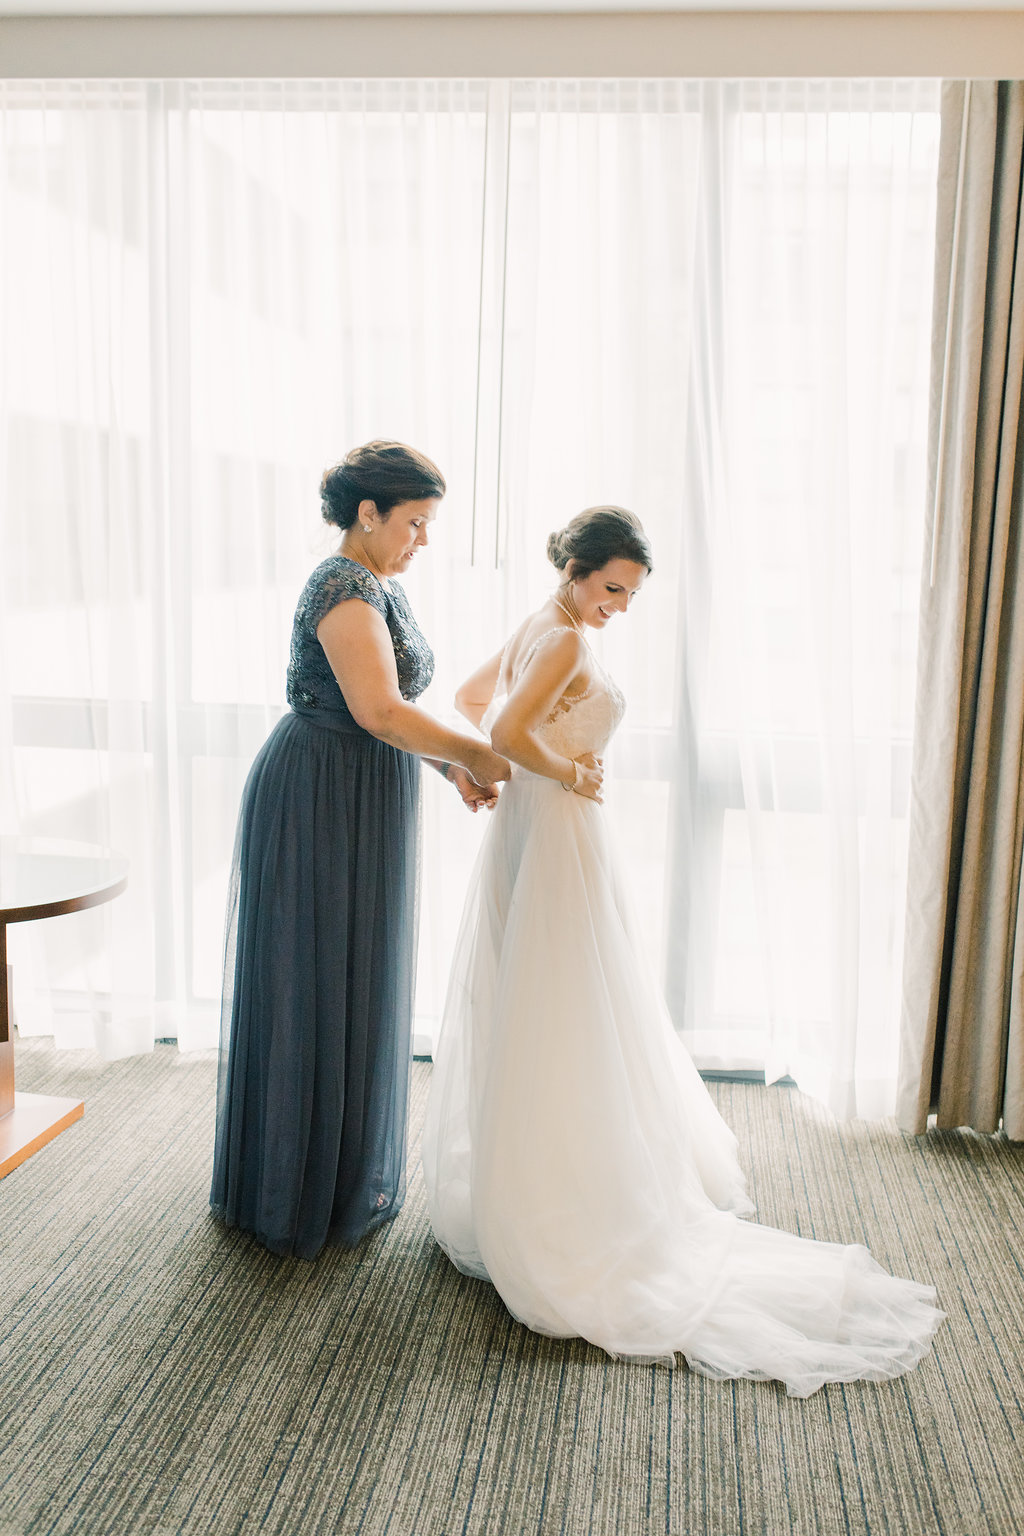 Ault Park Wedding - Cincinnati Bride